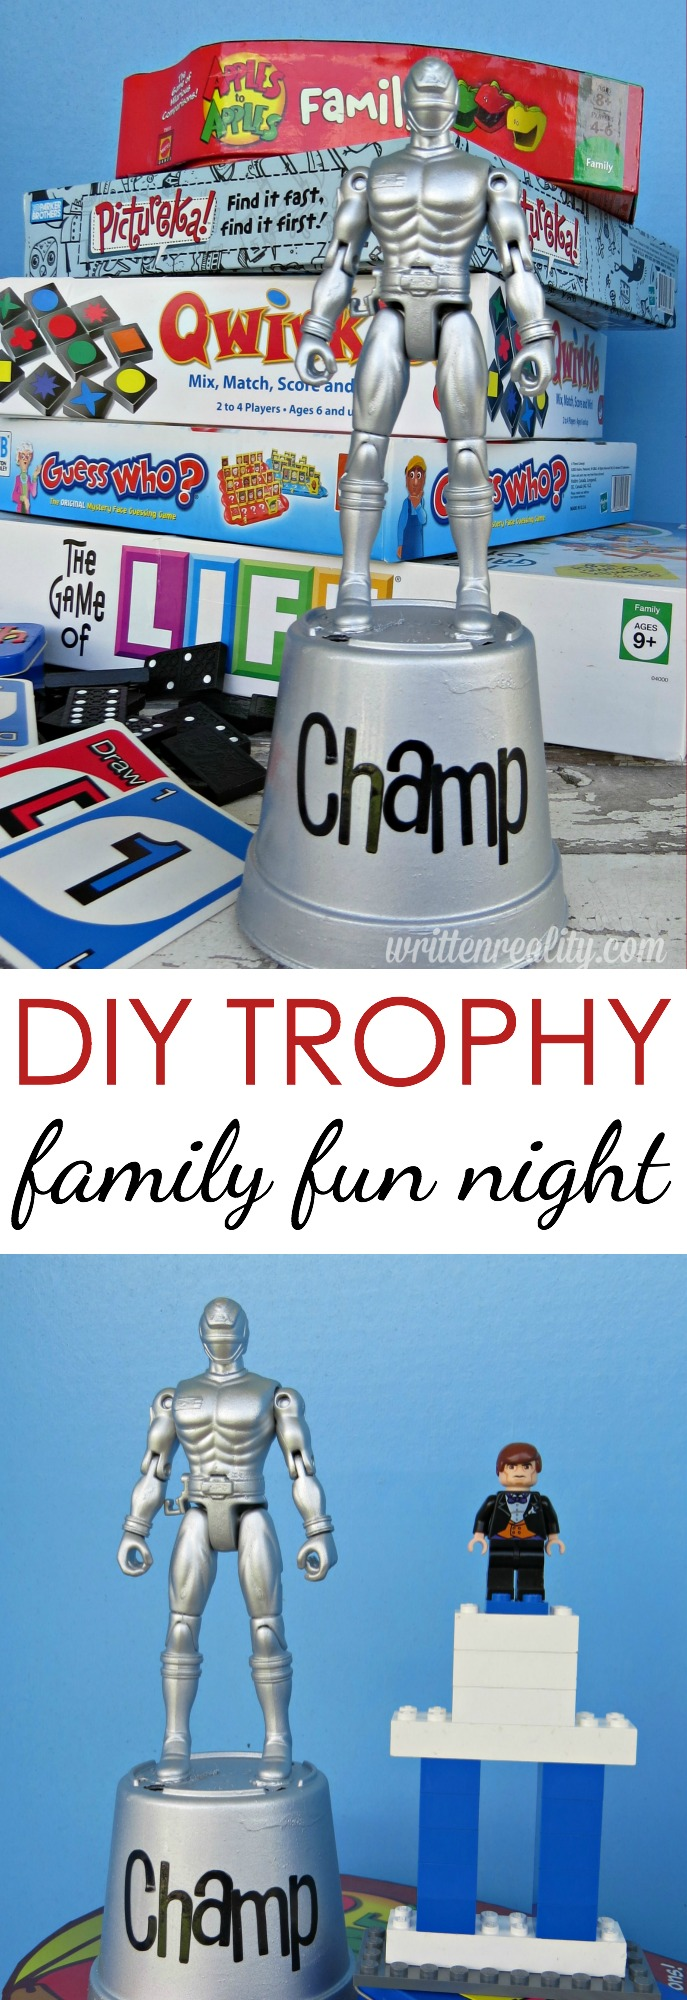 family fun trophy